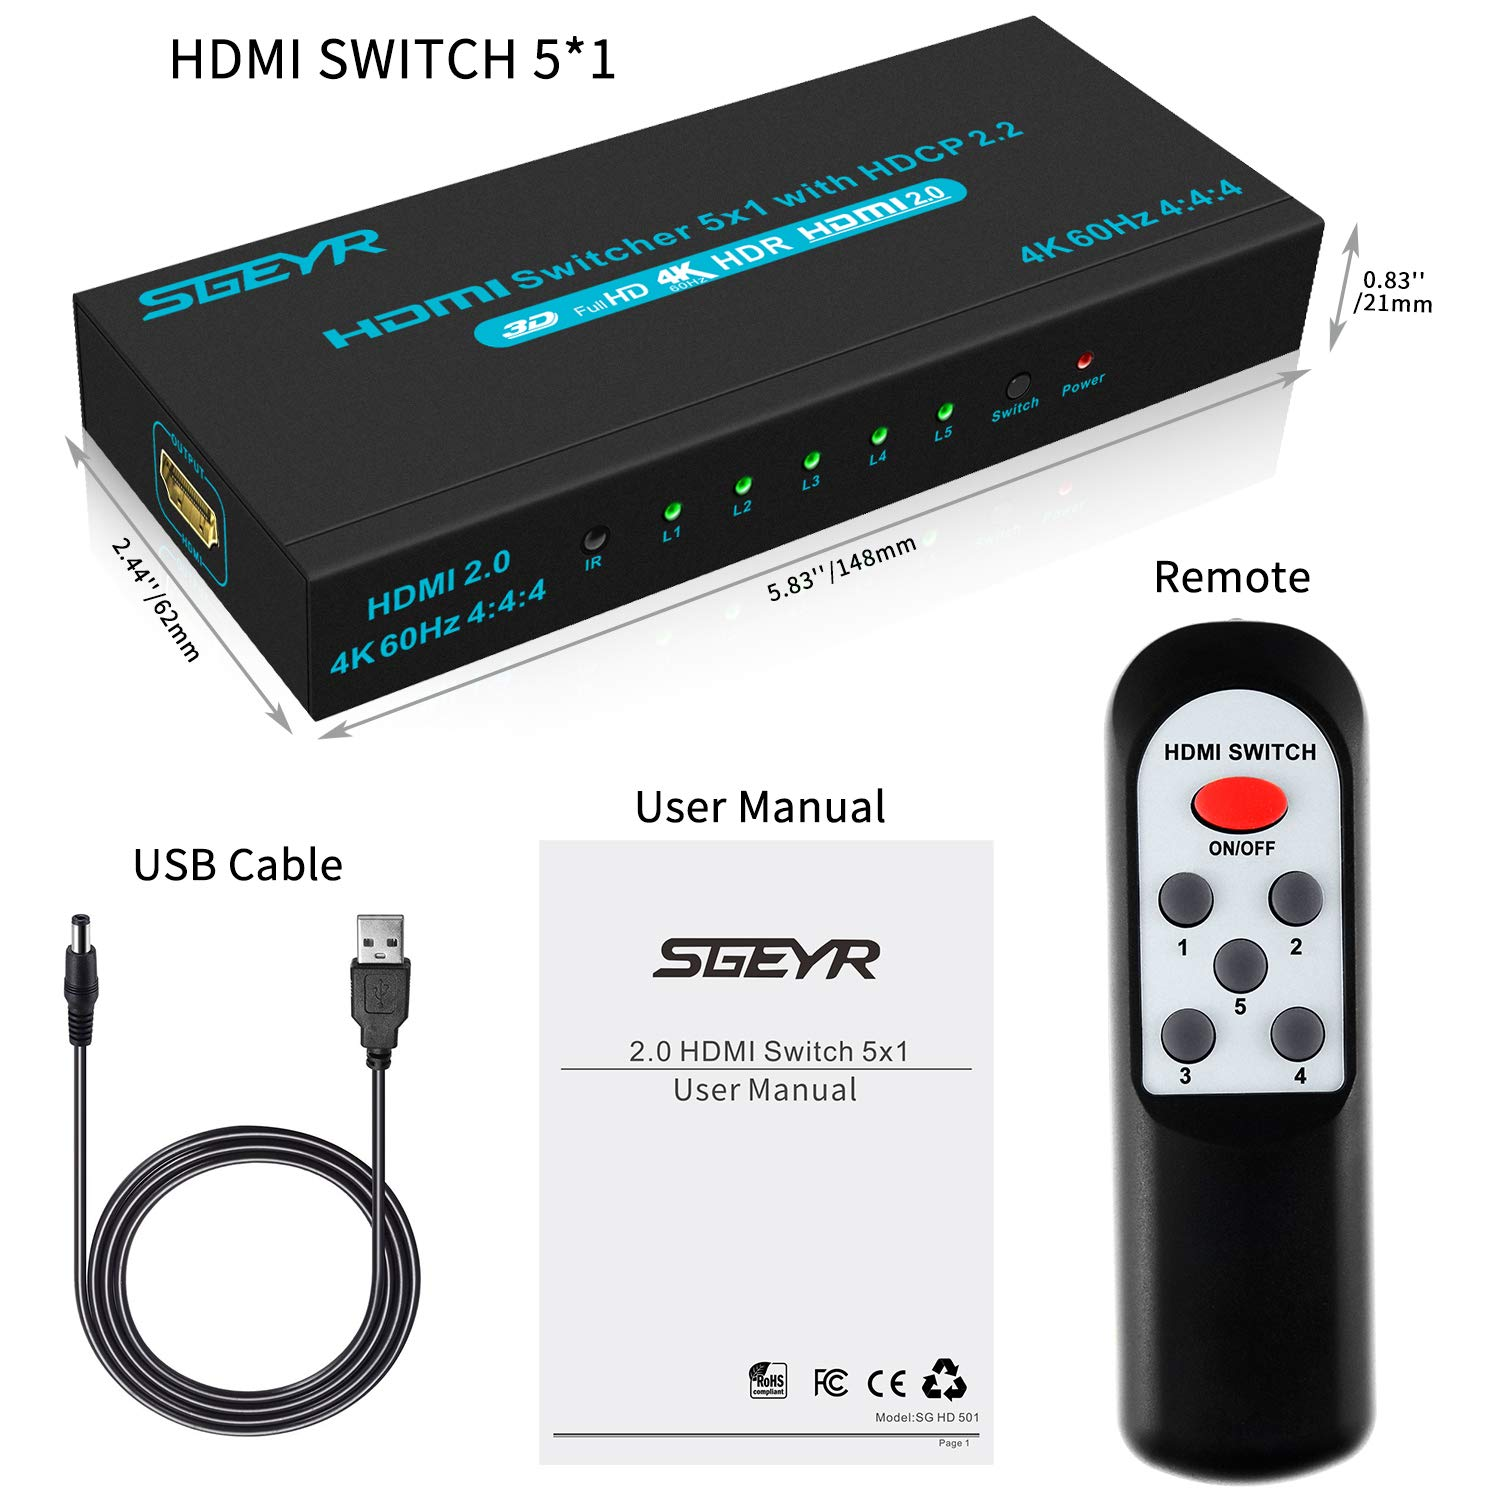 SGEYR 4K@60Hz 5x1 HDMI Switch HDMI Selector Switch 5 Port HDR IR Remote 4K HDMI Selector Box 5 in 1 Out Auto Switch HDMI Switcher 2.0 HDCP 2.2,Full HD/3D Compatible with /PS4/DVD//Xbox/Projector by SGEYR